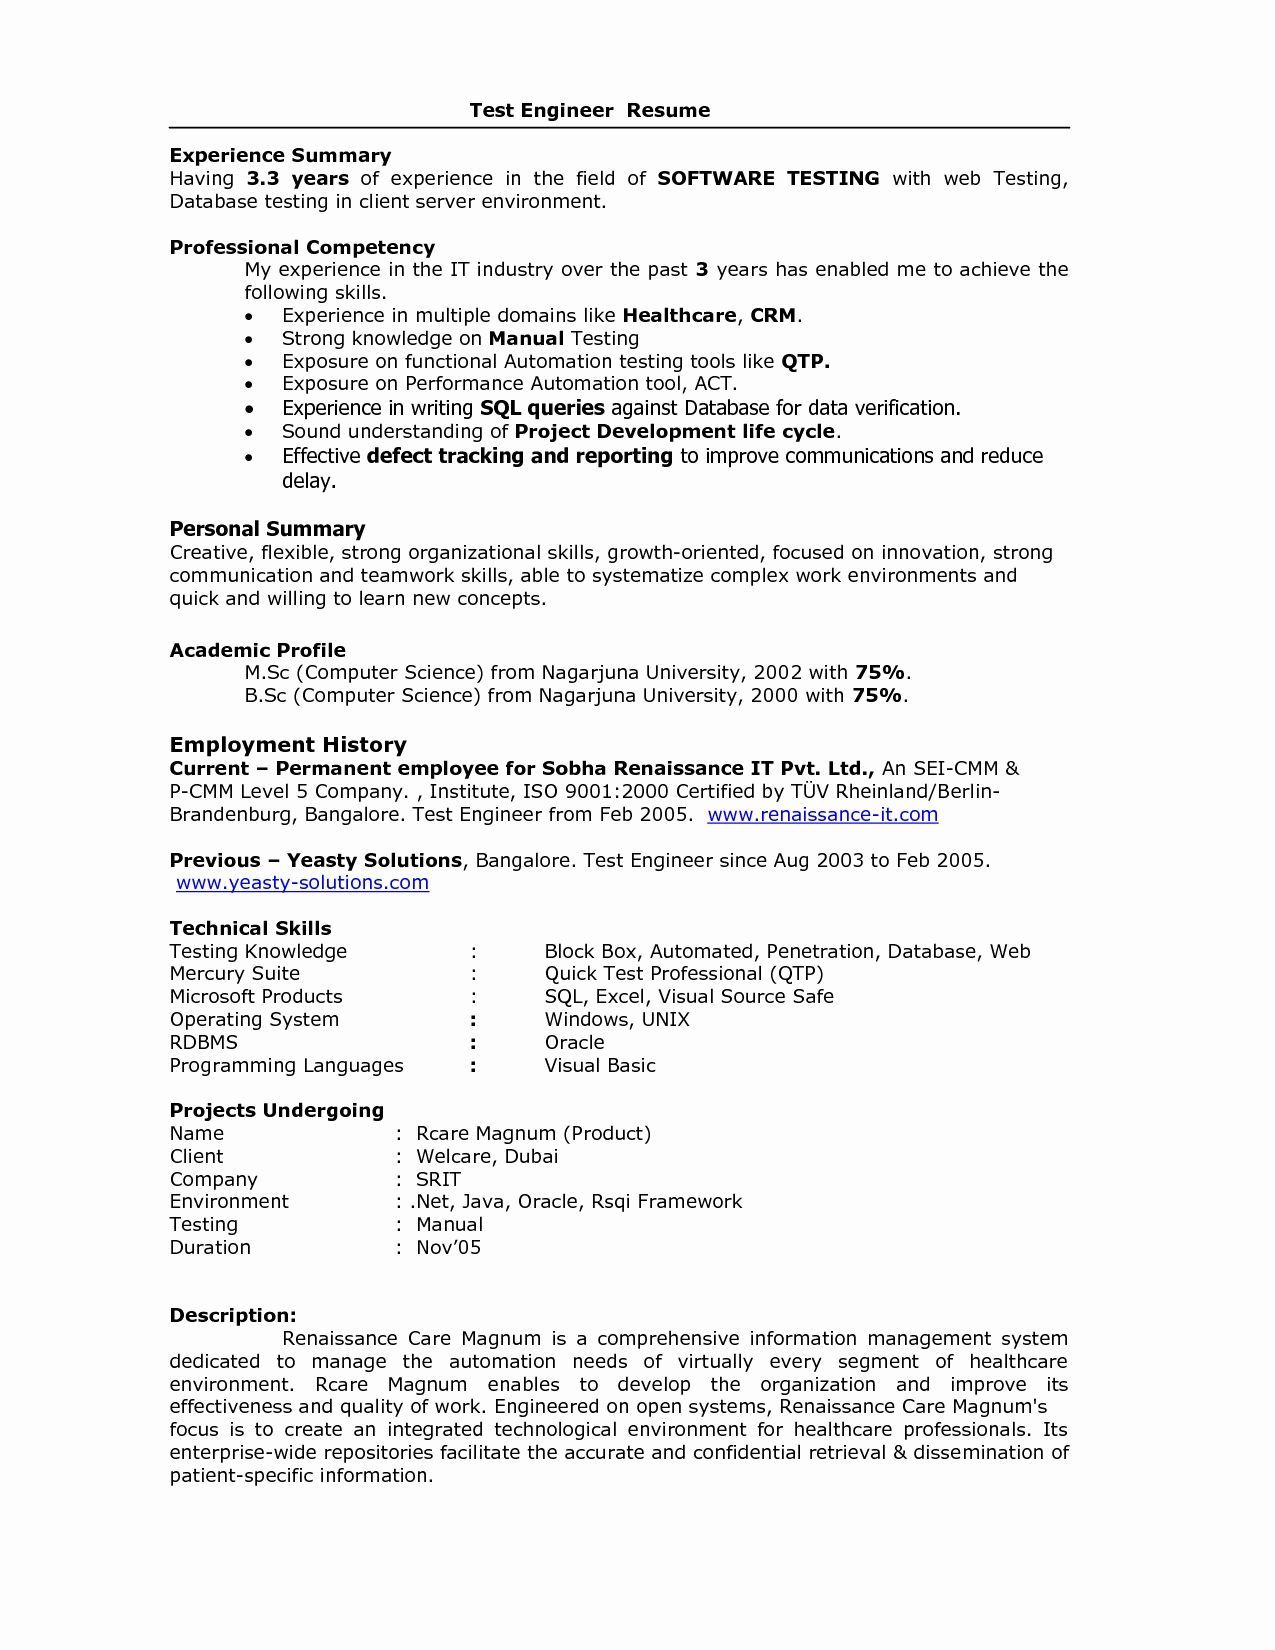 8bde9db1d492108cb5f71e5361b633dc - Great manual testing resume samples for experienced